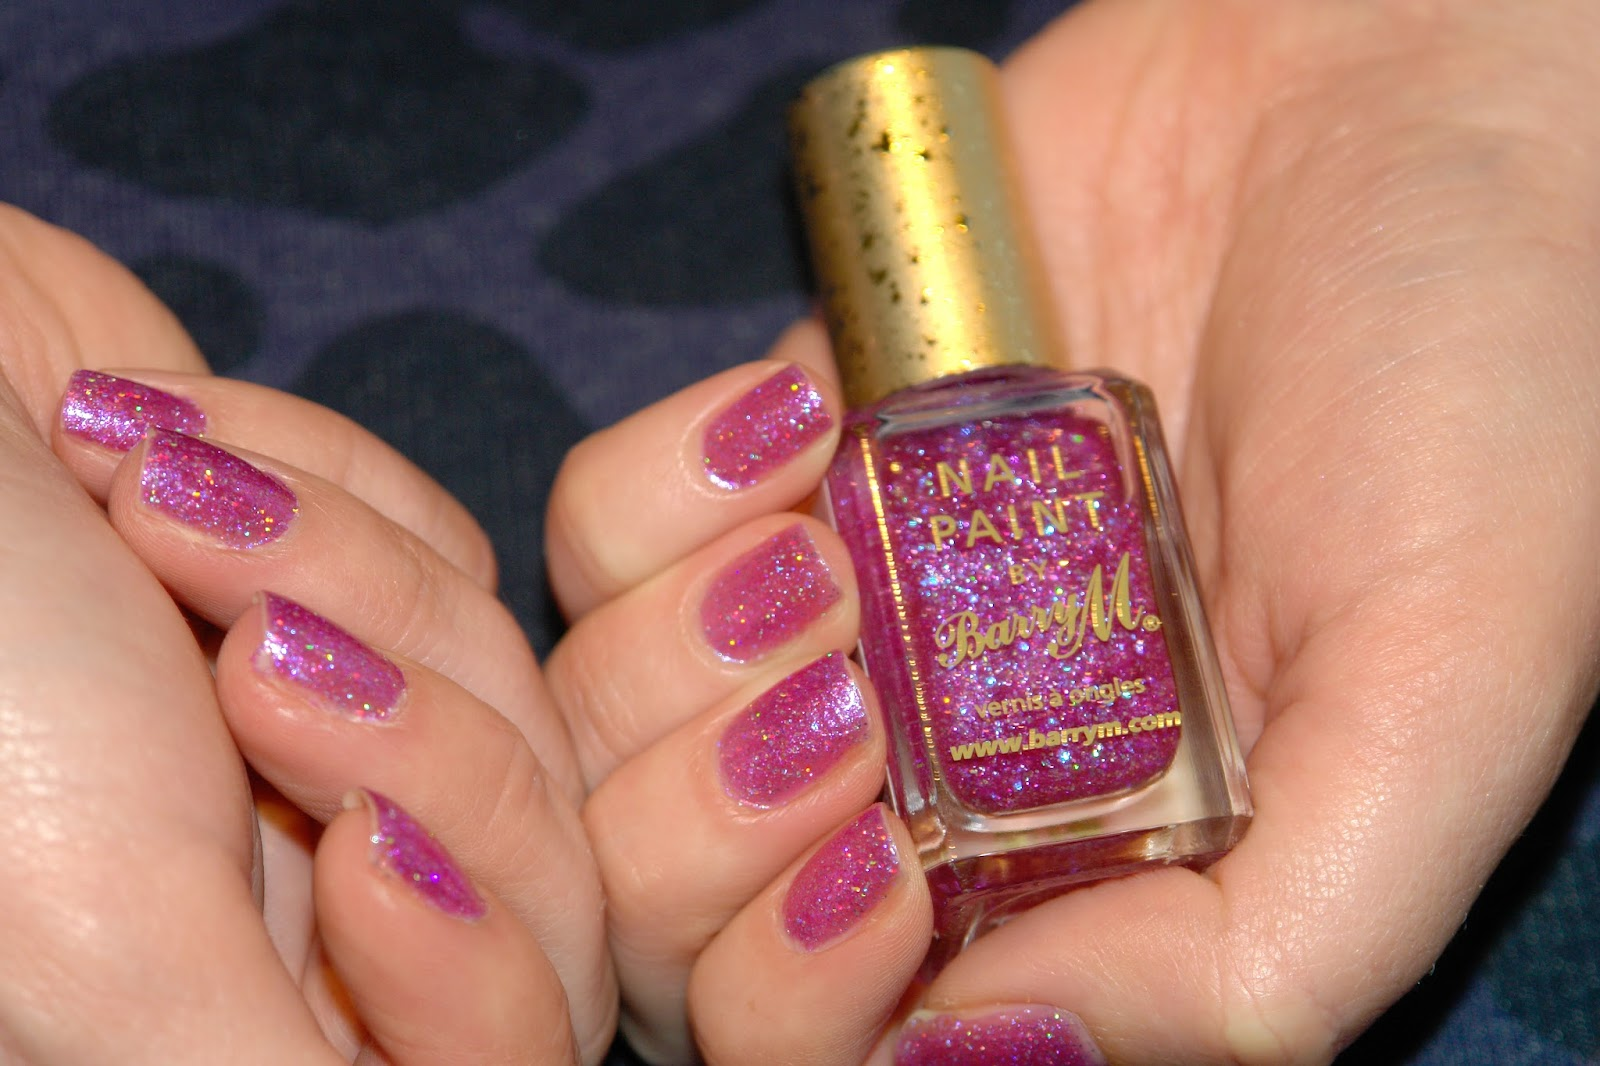 Barry M Socialite nail polish, Barry M, nail polish, nails, NOTD, pink, glitter, review, swatches